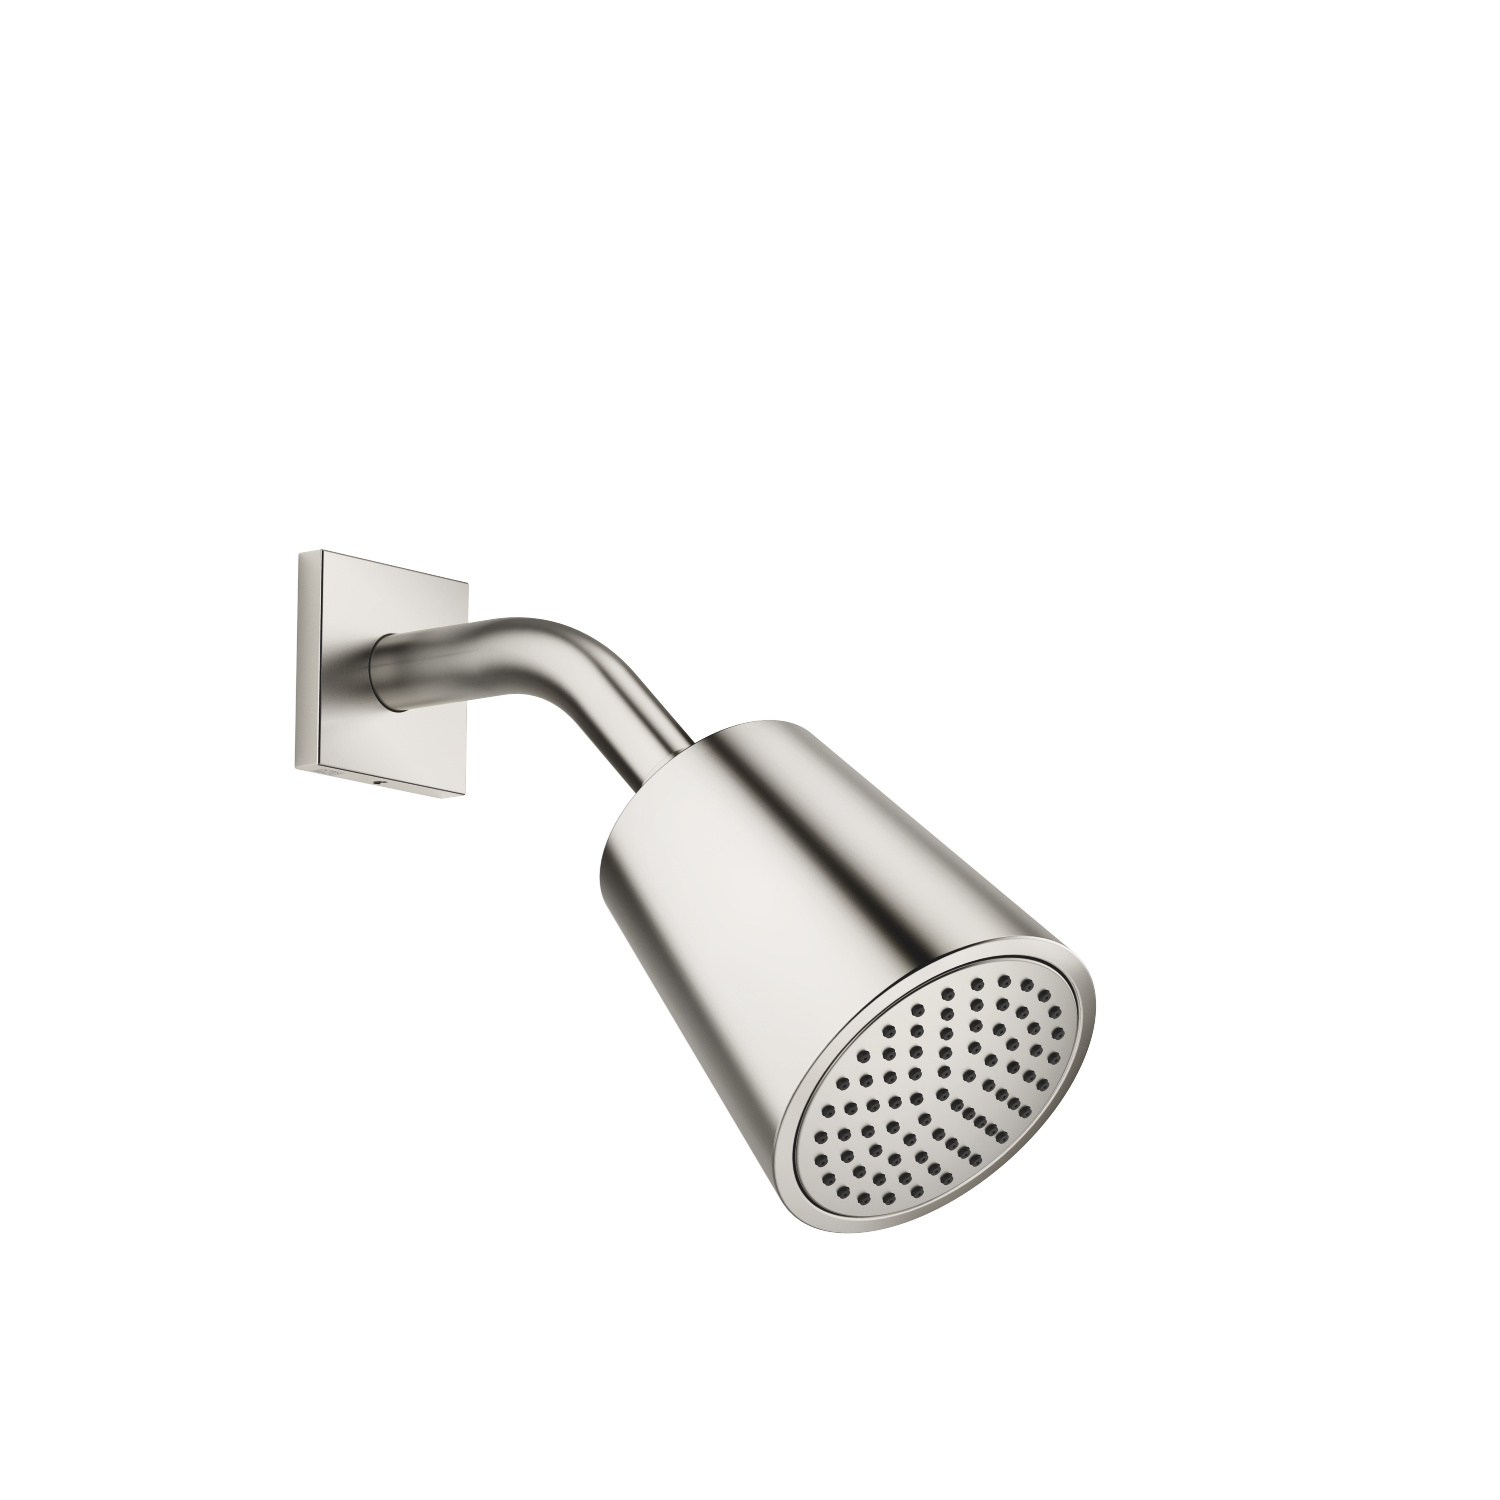 Shower head - platinum matt - 28 504 670-06